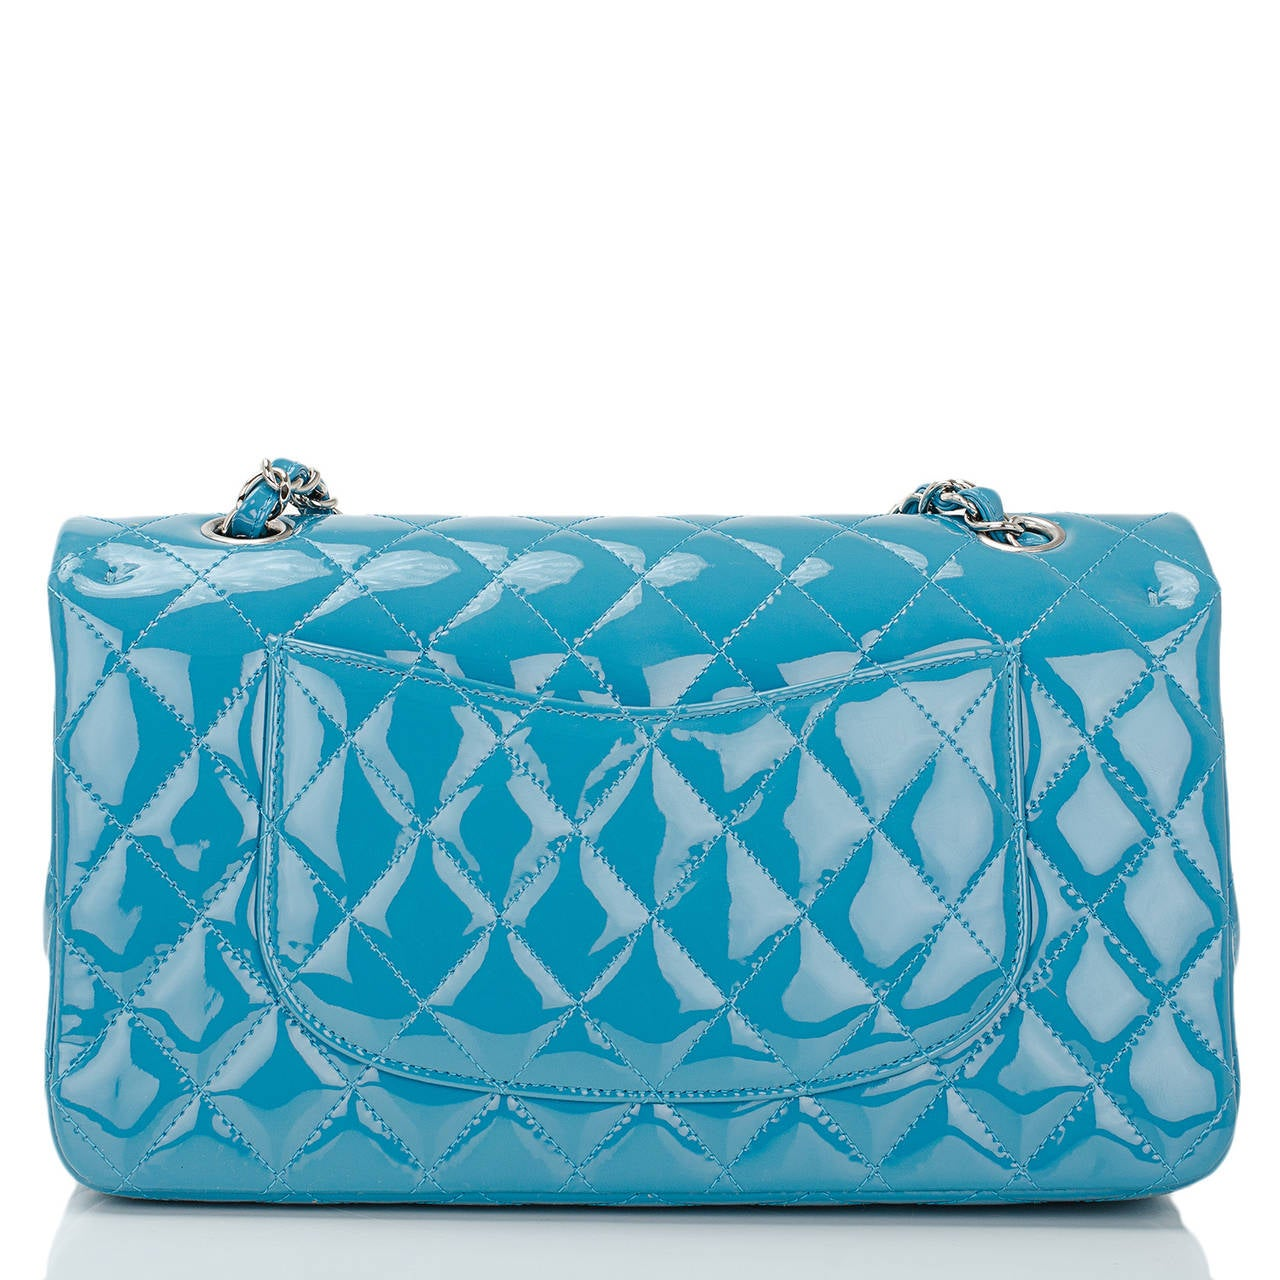 Chanel Turquoise Quilted Patent Medium Classic Double Flap Bag In New never worn Condition For Sale In New York, NY